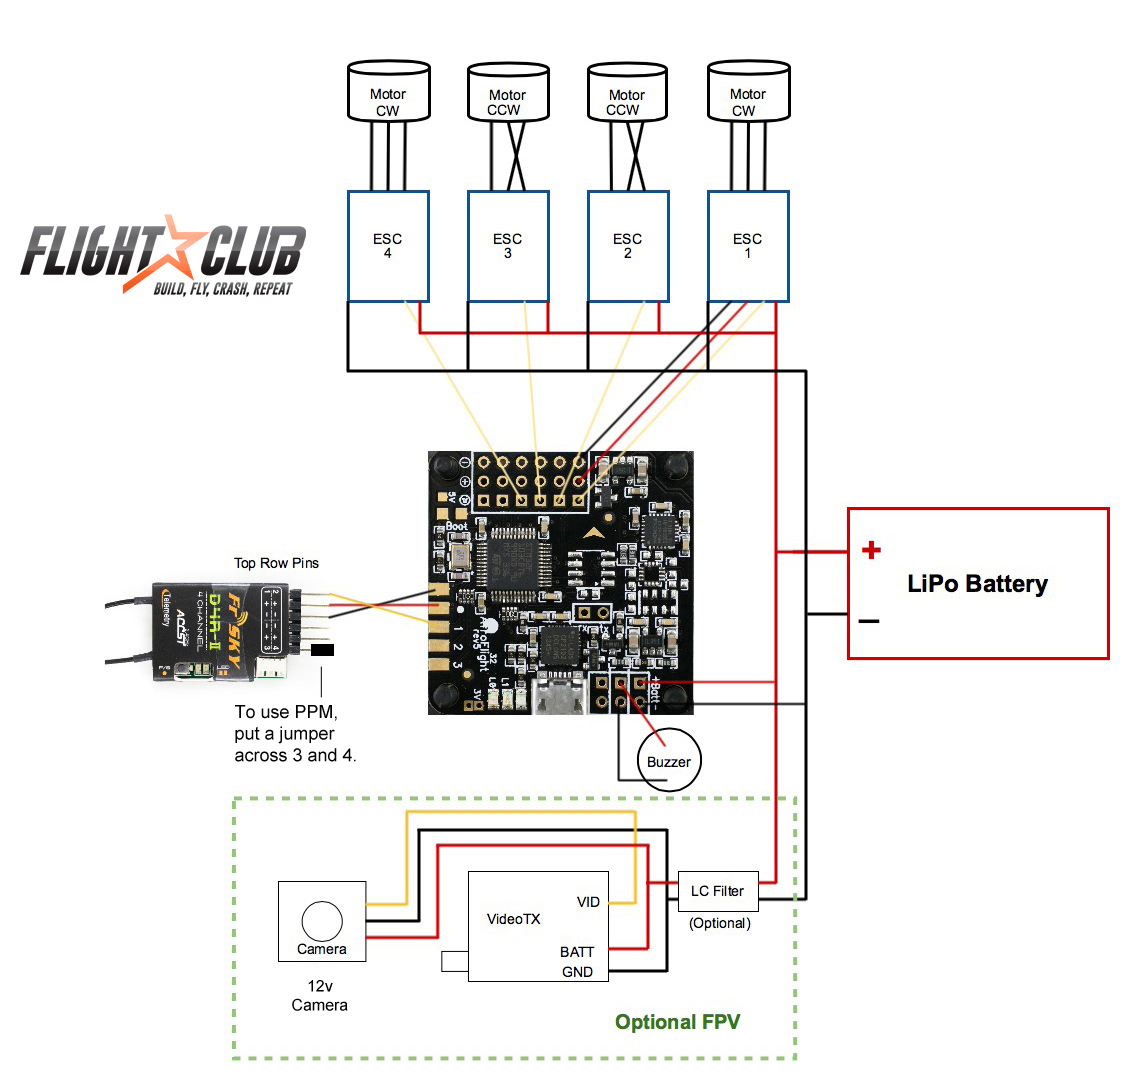 fpv racing drone wiring diagram plant cell not labeled learn how to build best quadcopter flightclub